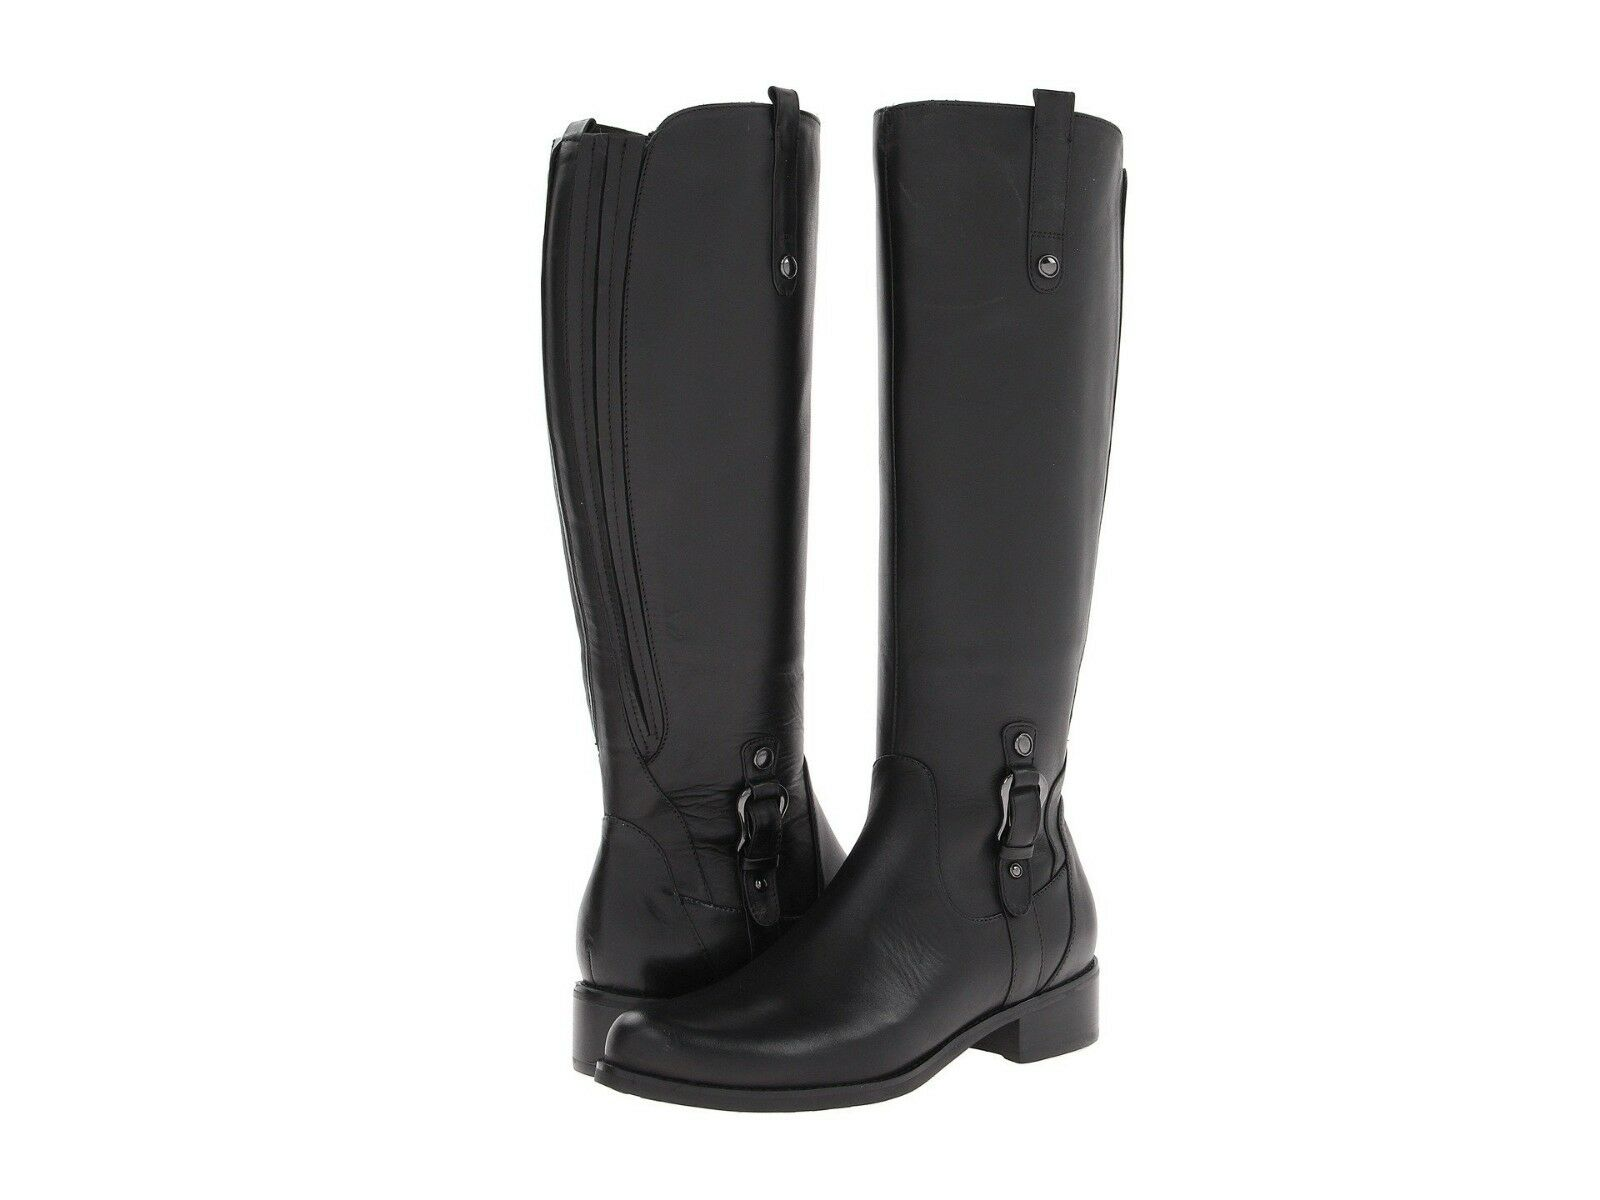 New BLONDO Venise Waterproof Black Waterproof Venise Riding Boots sz 6 M faa978